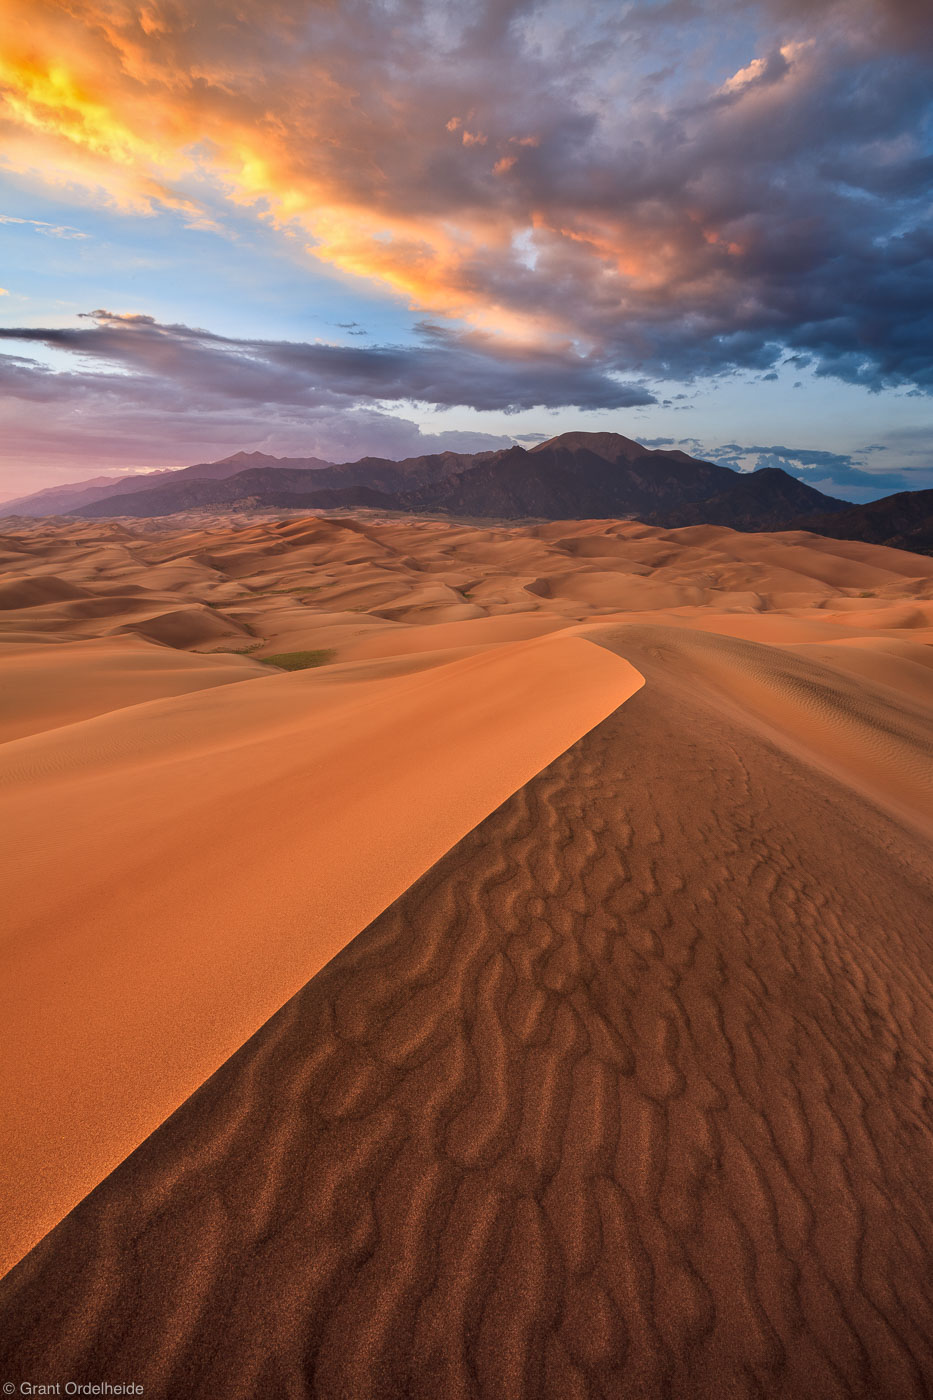 sand, dunes, sunset, great, national, park, colorado, north, america, largest, alamosa, colorado, photo